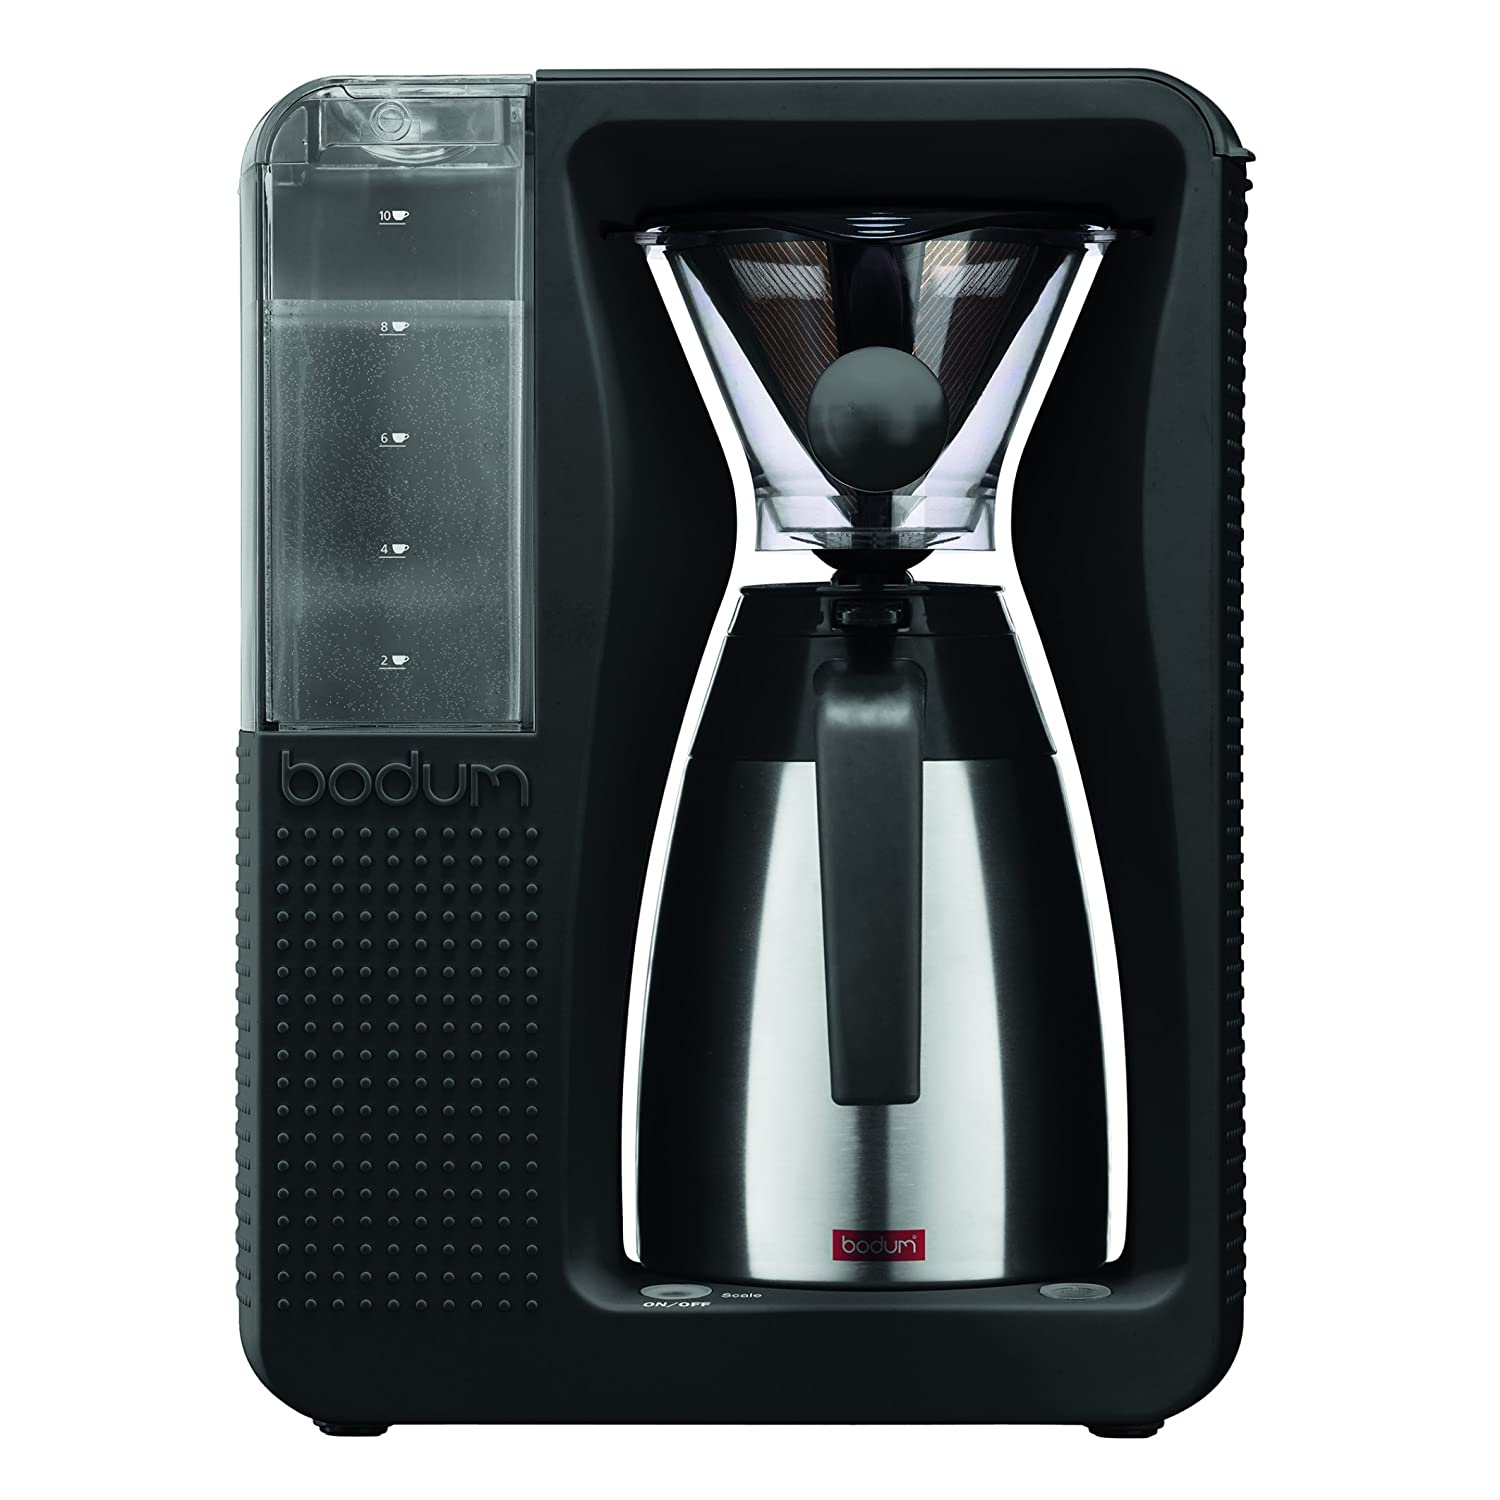 Bodum 11001-01TG Bistro Coffee Machine with Thermal Carafe, Automatic Pour, 40-Ounce, Black